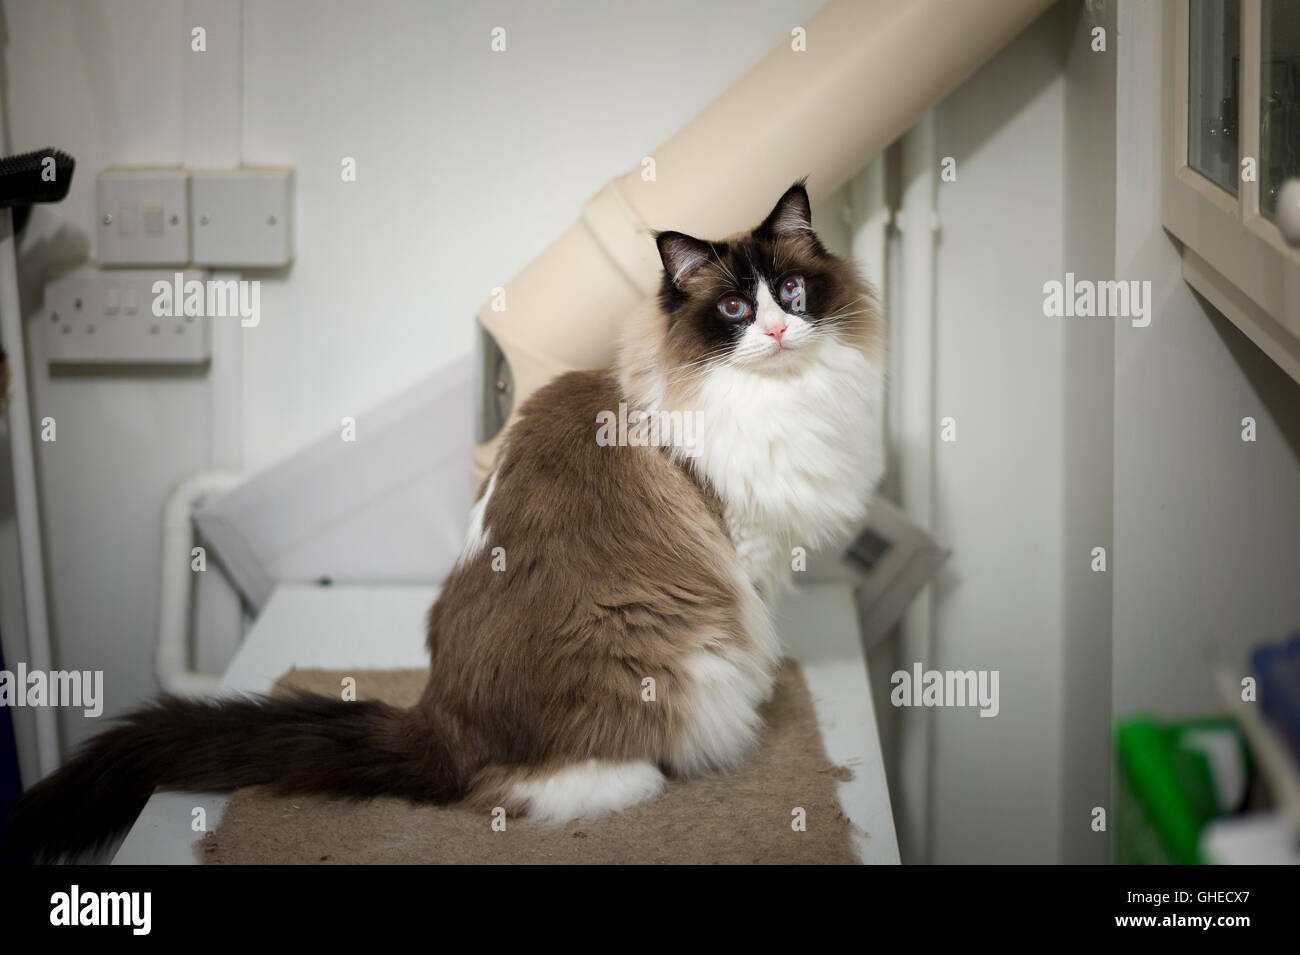 A Ragdoll cat caught on the warm hot water boiler on a cold evening in winter - Stock Image